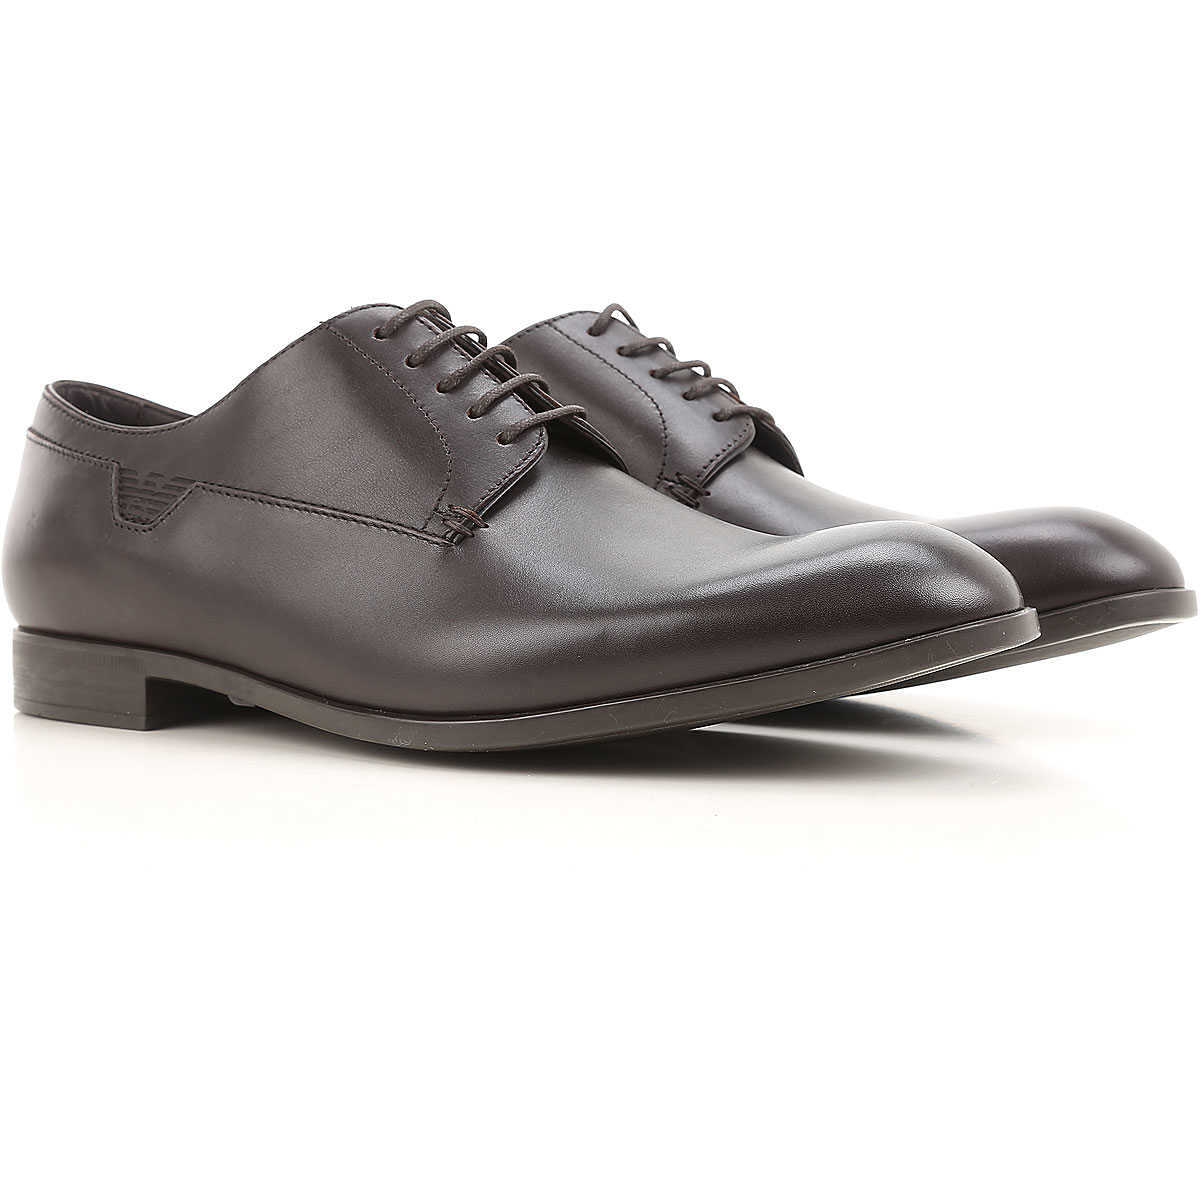 Emporio Armani Lace Up Shoes for Men Oxfords 8 9 Derbies and Brogues On Sale UK - GOOFASH